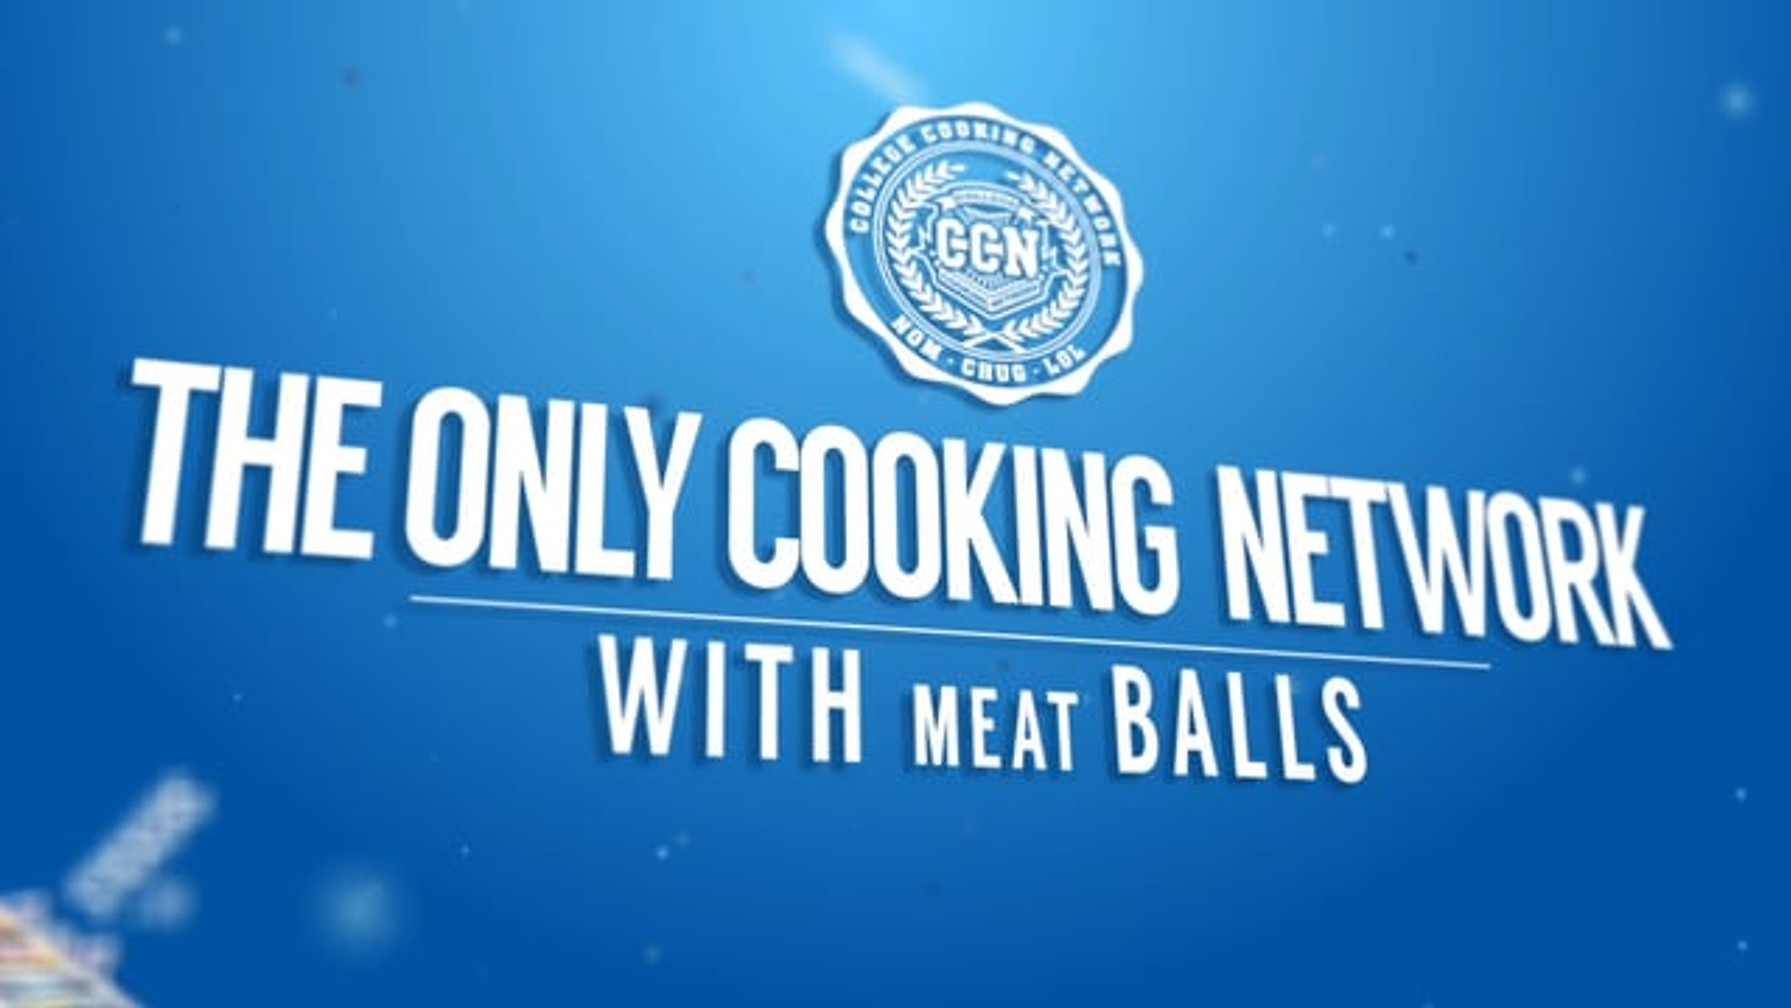 COLLEGE COOKING NETWORK